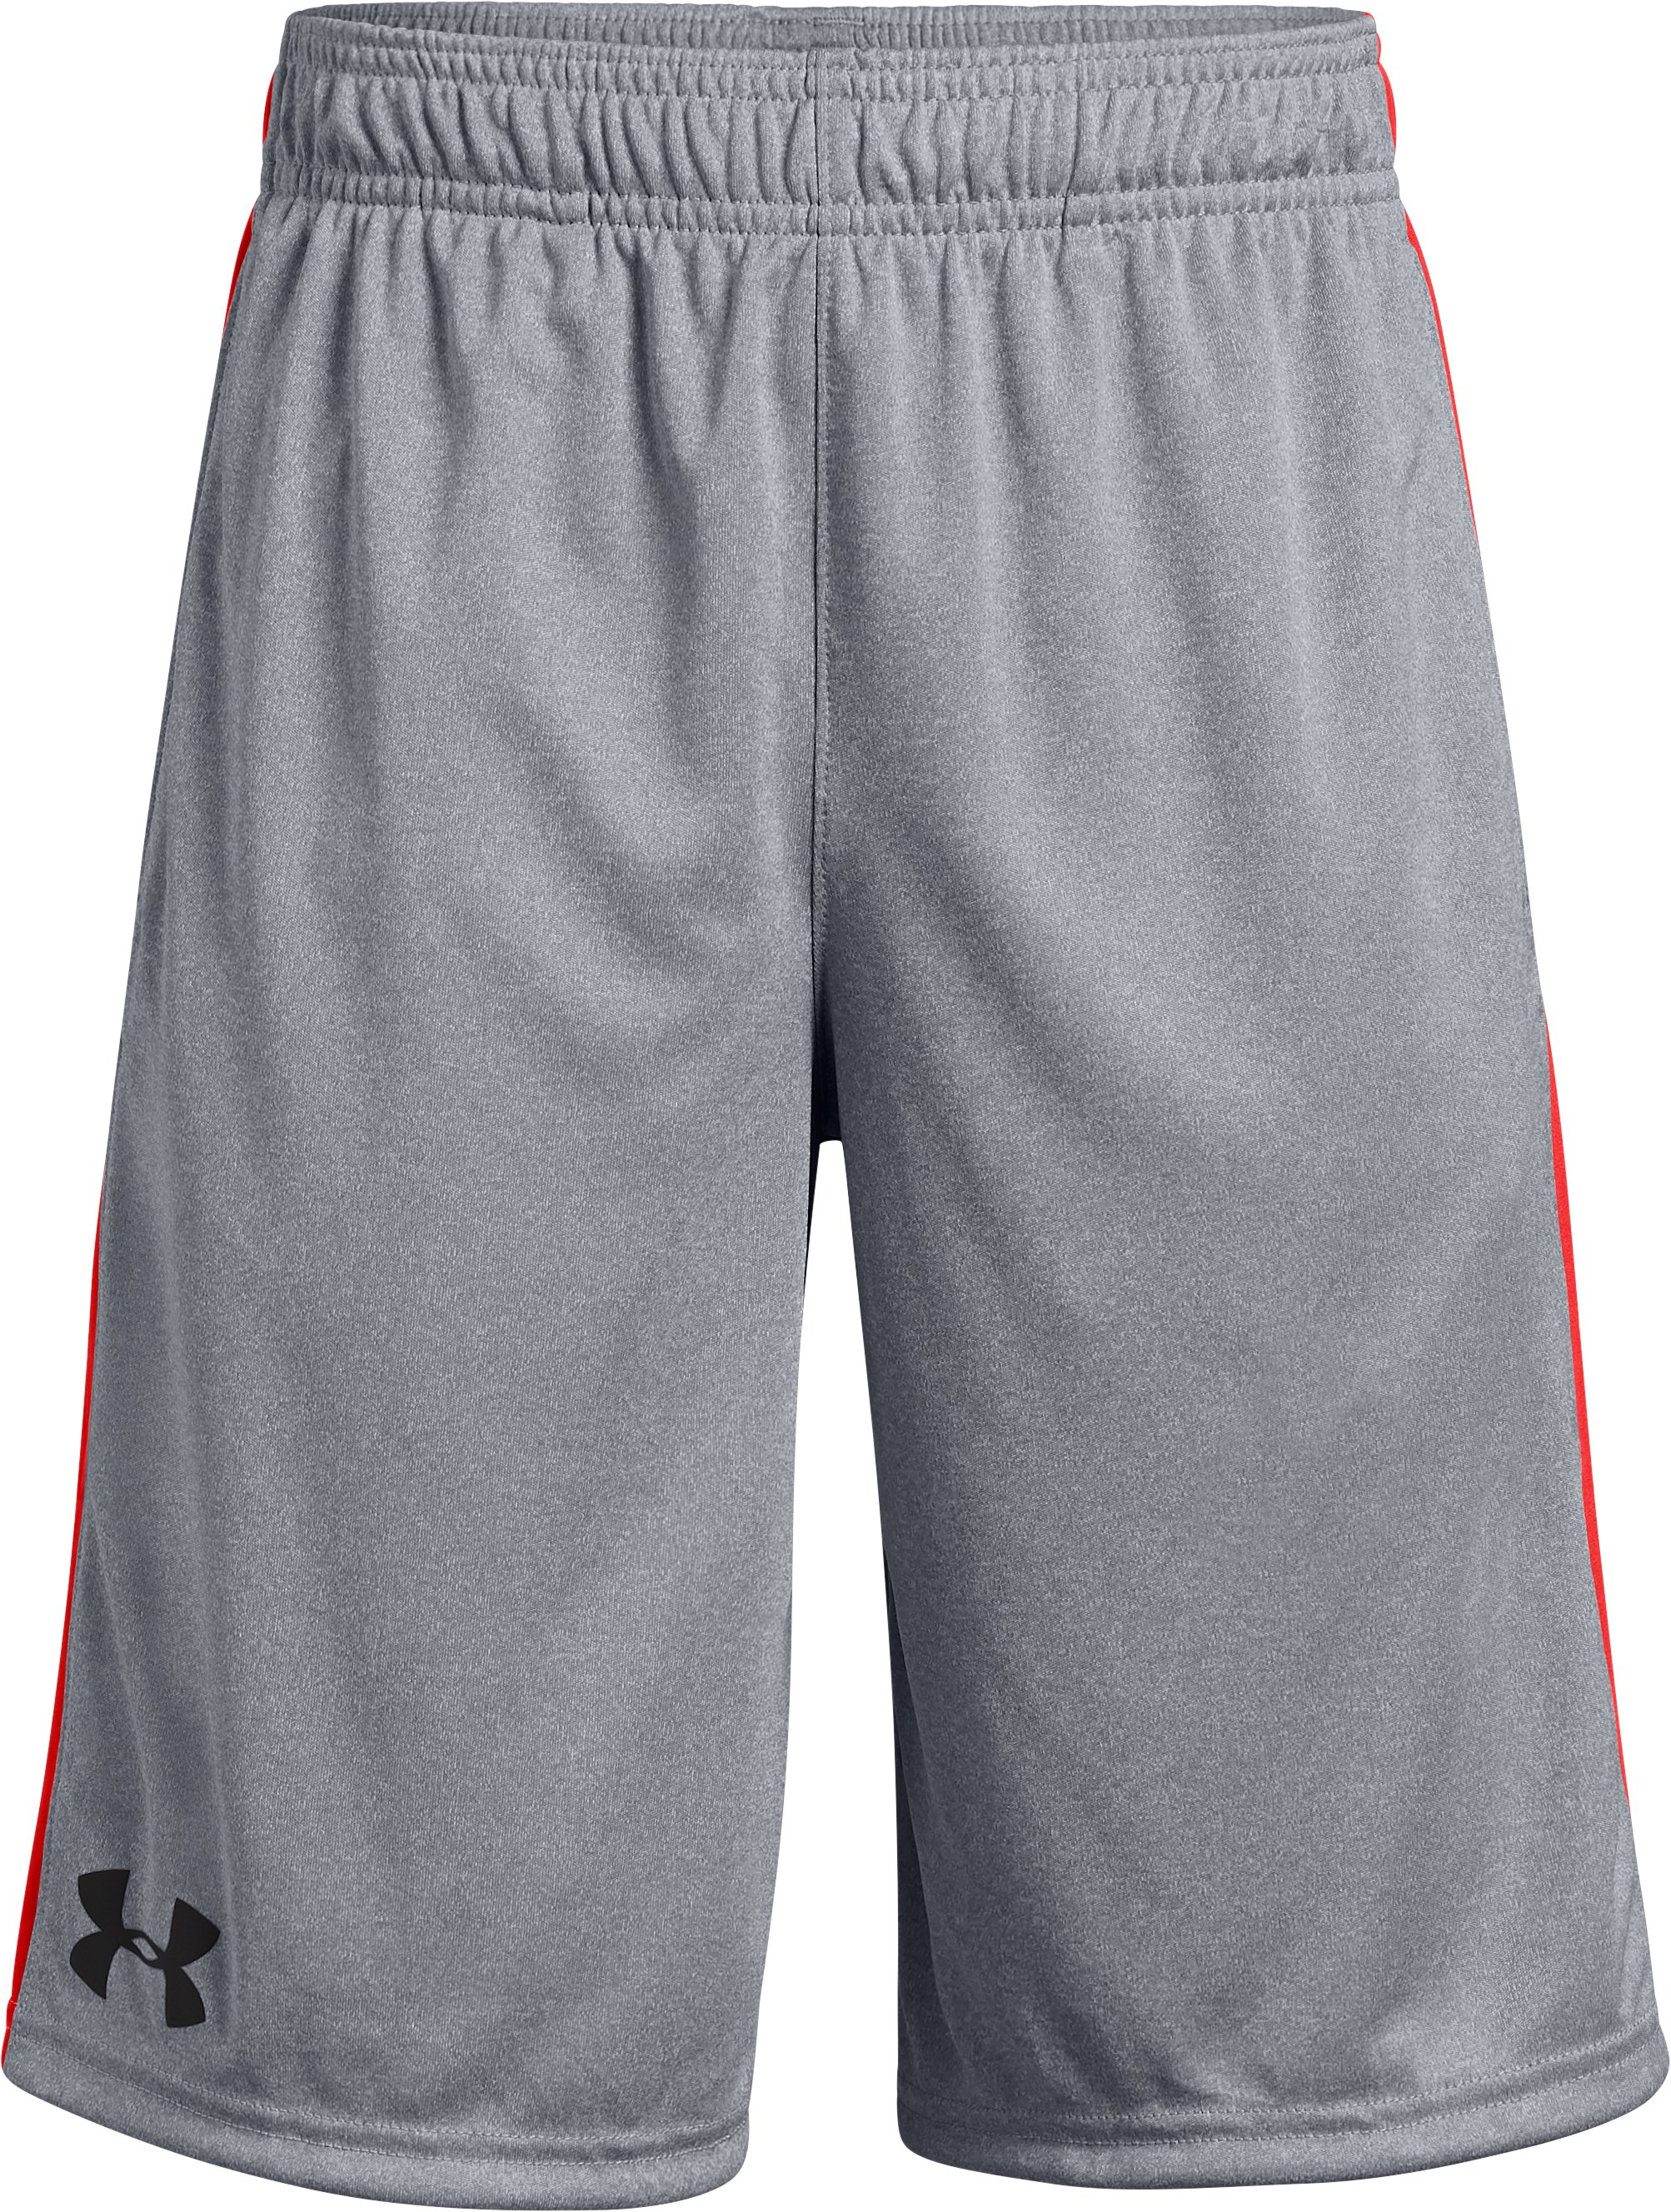 Boys' UA Stunt Shorts, STEEL LIGHT HEATHER,